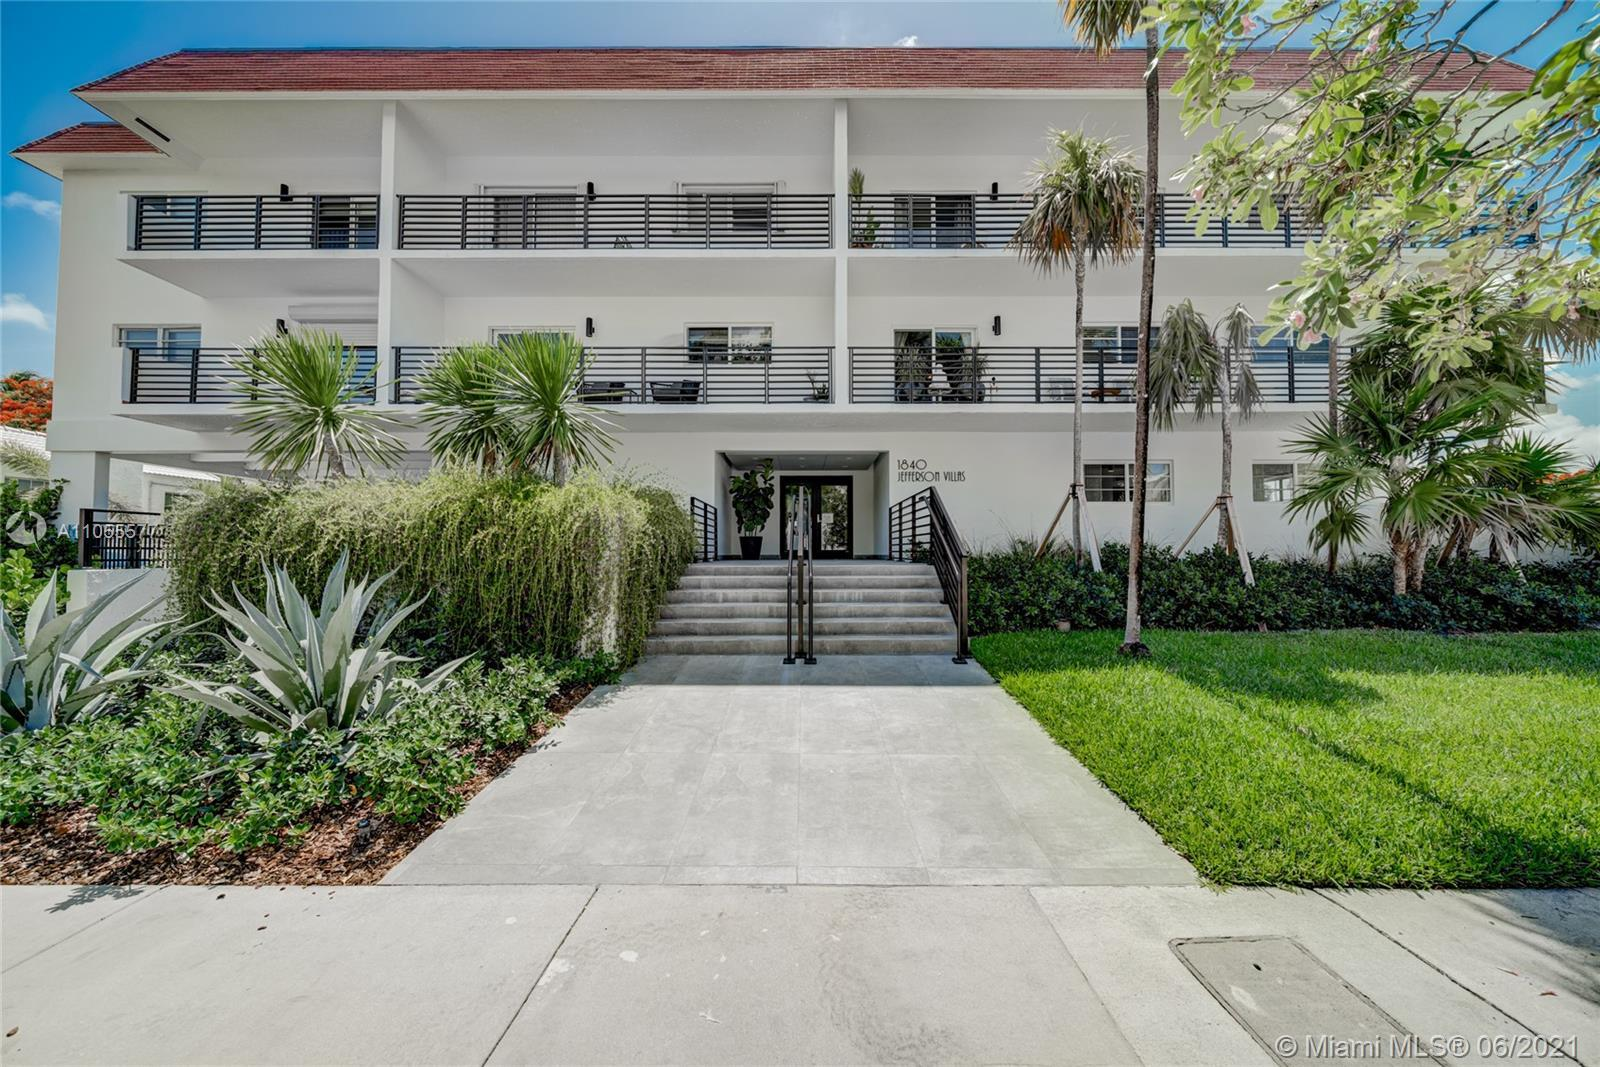 Fully renovated apartment in Miami Beach (Jefferson ave) 2bedroom 2baths, facing the golf course and